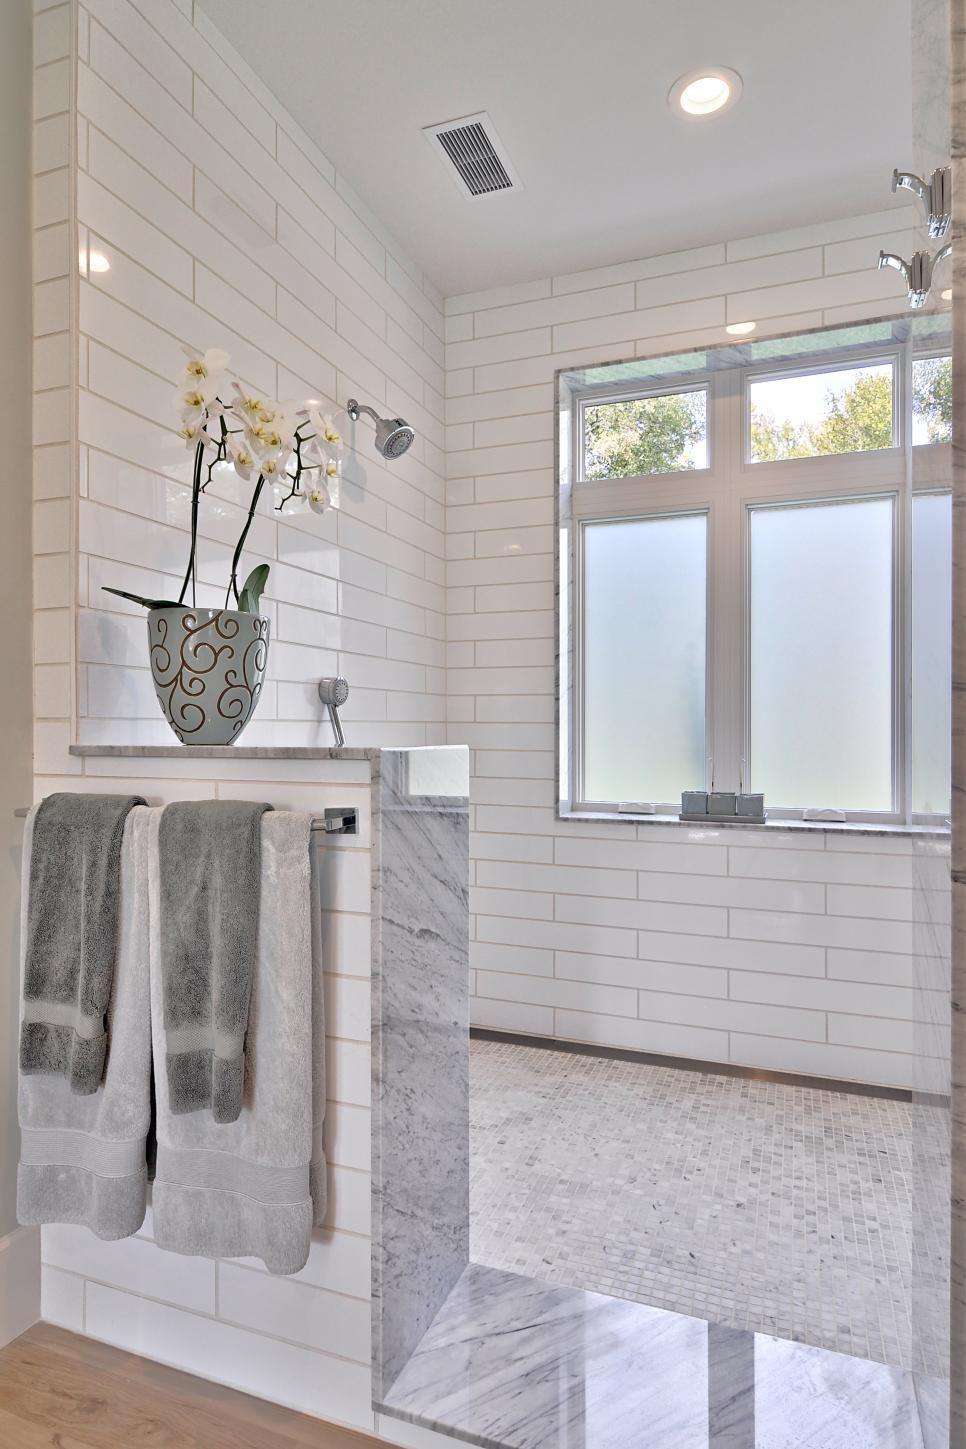 Classic White Subway Tiles And A Small Potted Plant Bring Charm To The Elegant Materials And Modern D Farmhouse Shower Window In Shower Bathroom Remodel Master